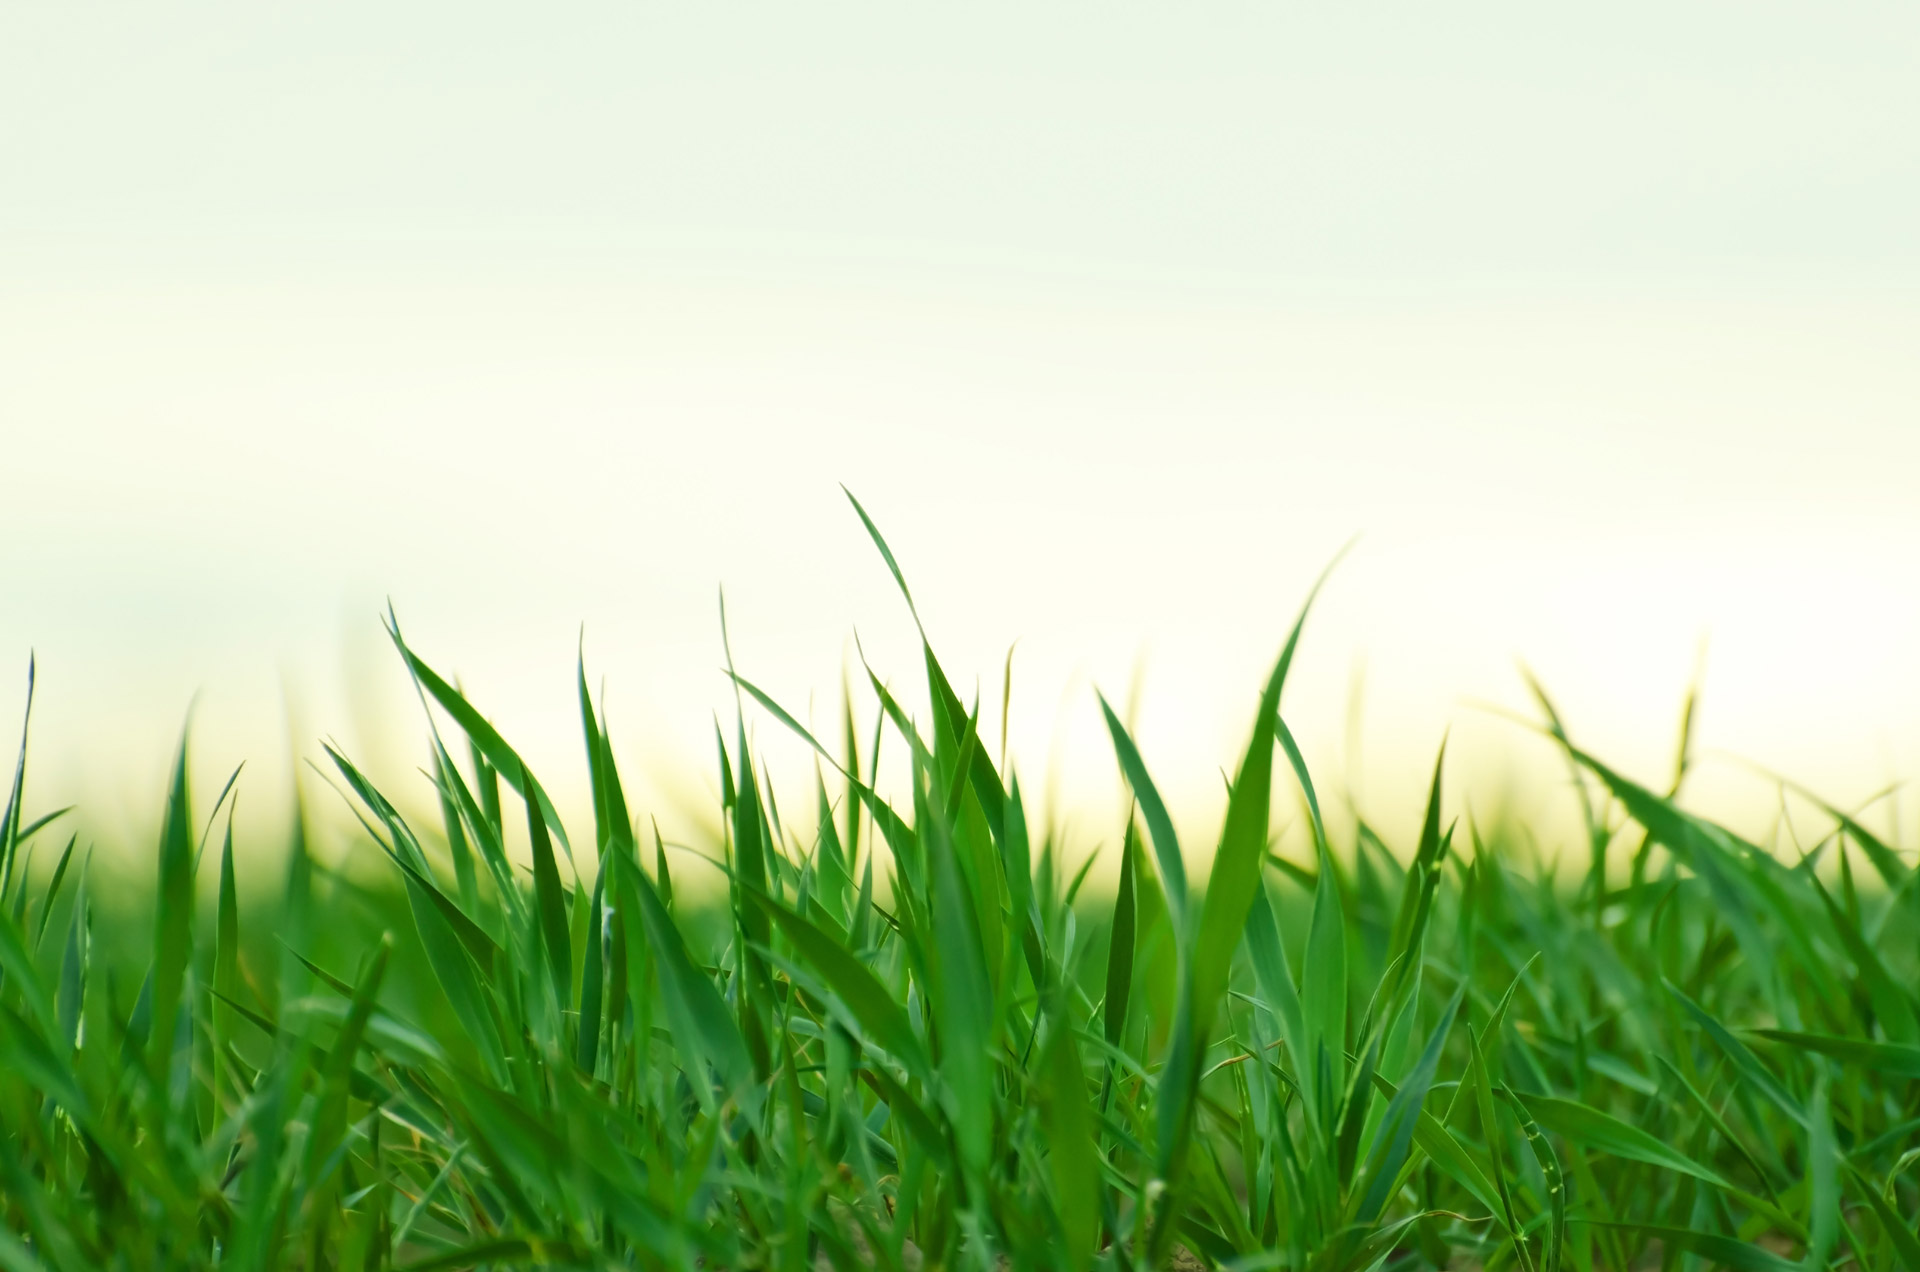 Grass Free Stock Photo - Public Domain Pictures